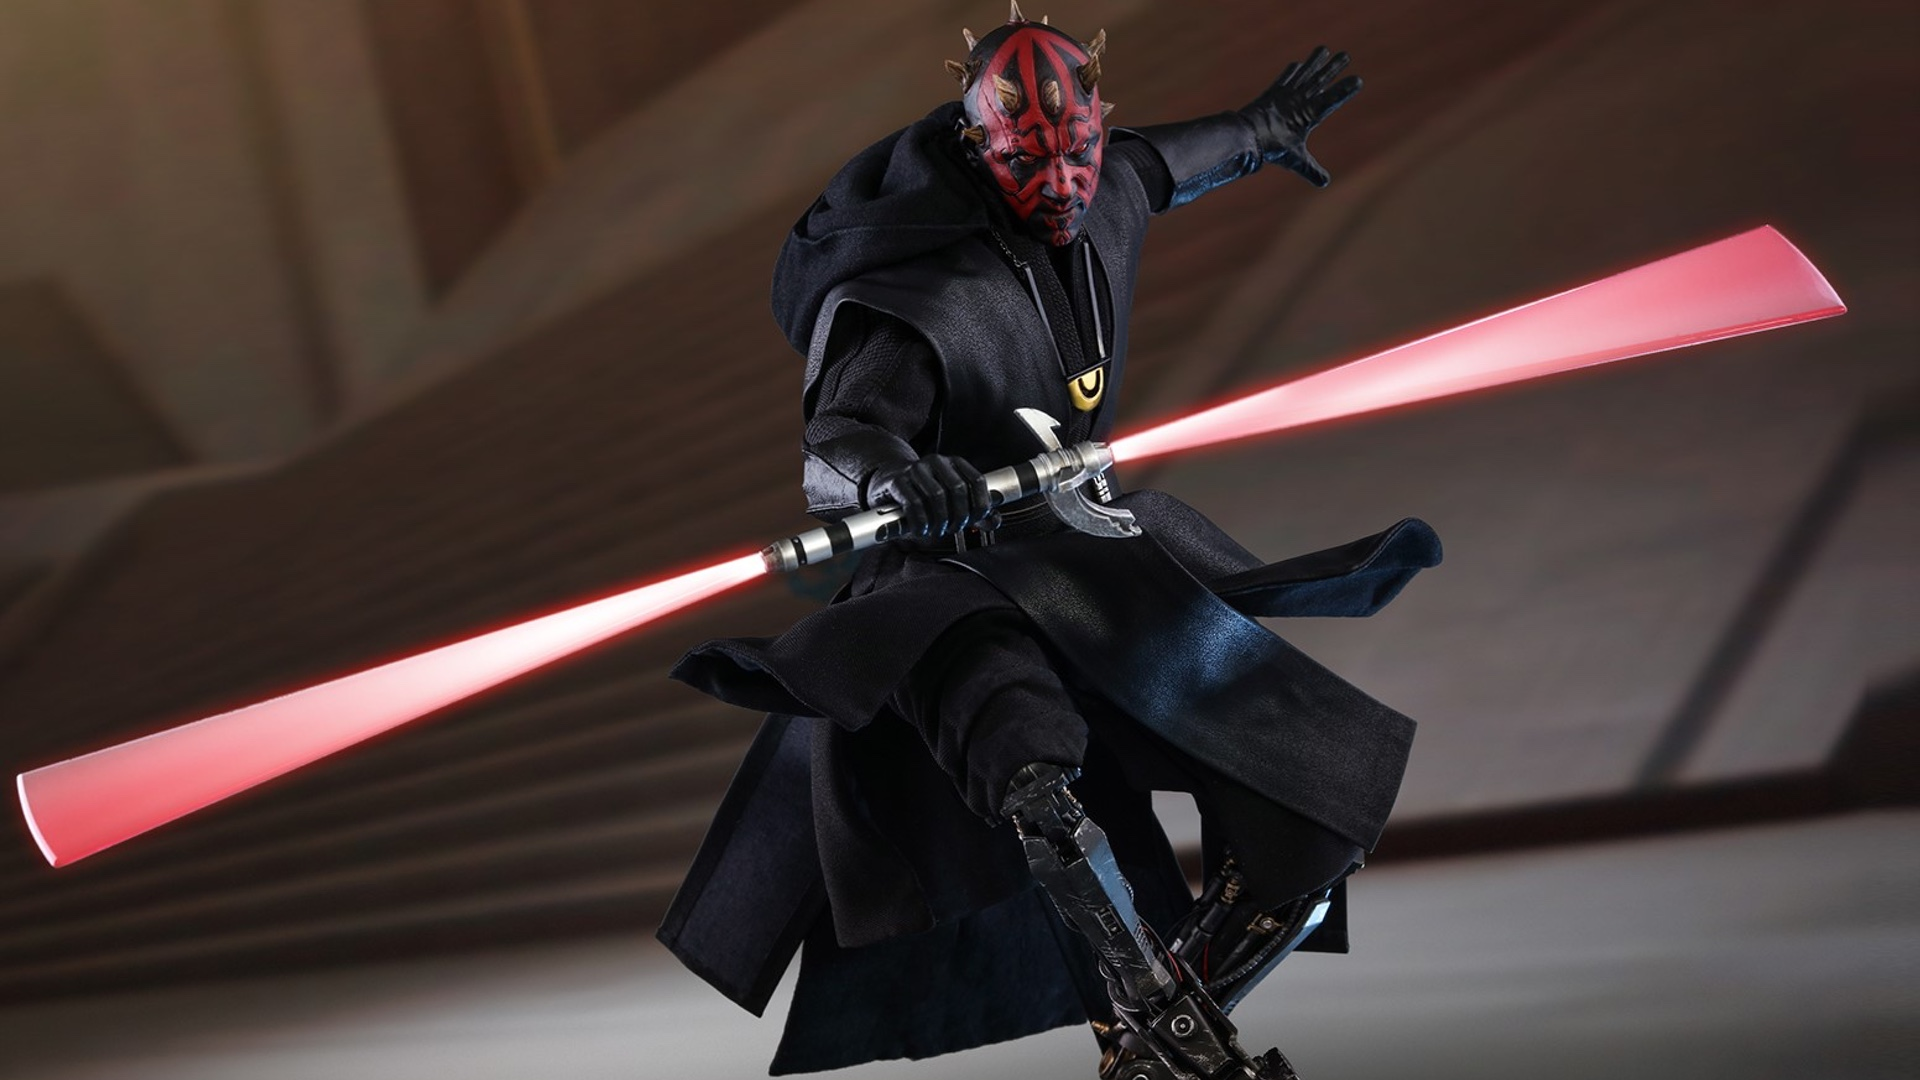 hot-toys-reveals-their-solo-a-star-wars-story-darth-maul-action-figure-complete-with-his-robotic-legs-social.jpg